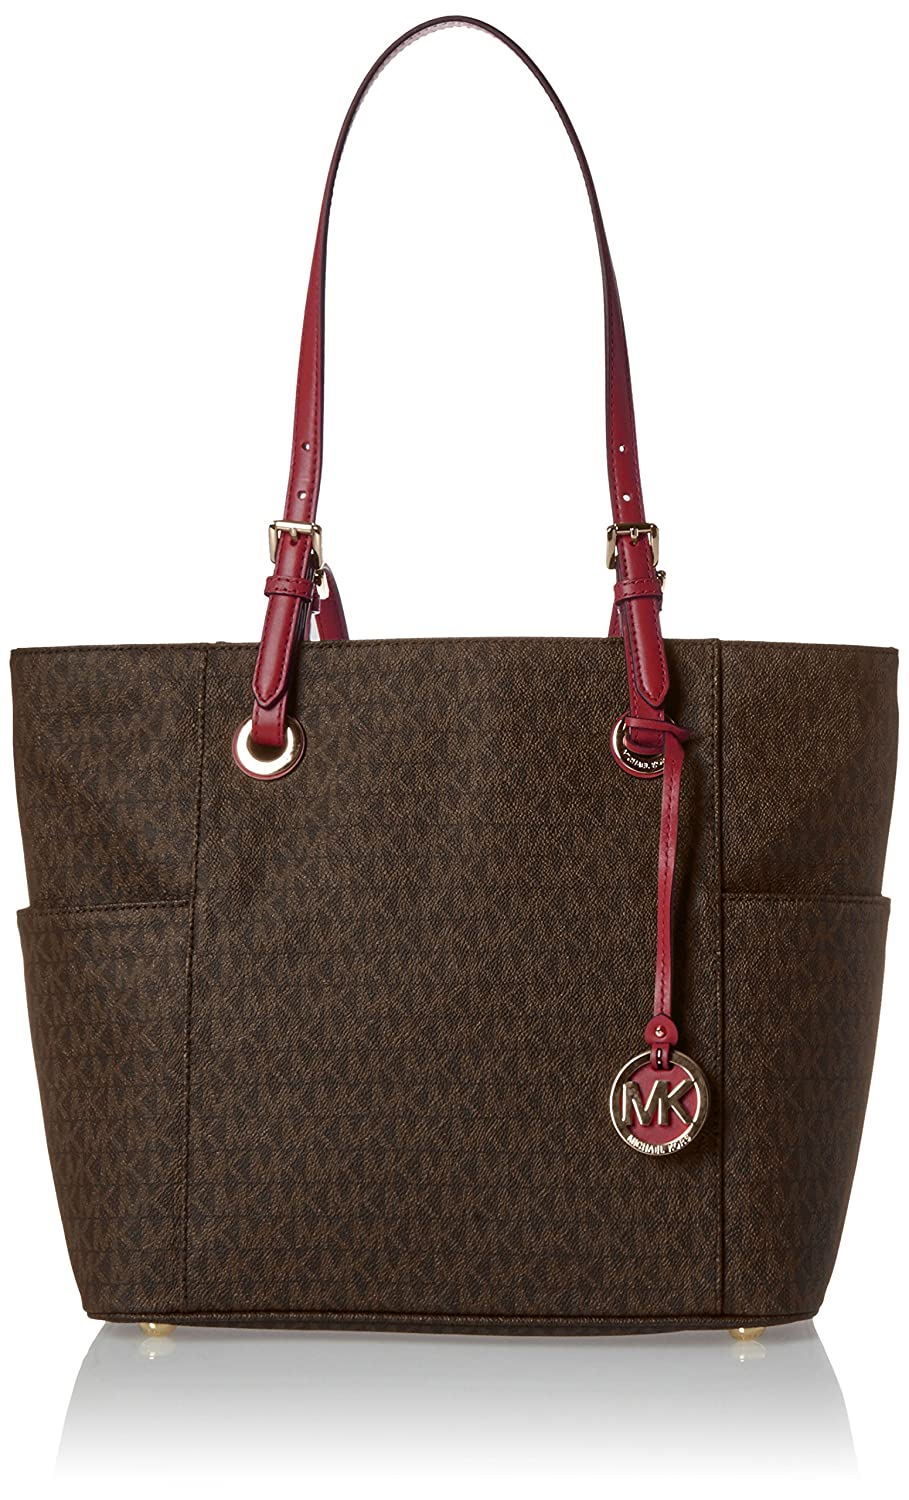 68af4f3fdc2a Amazon.com: Michael Kors Jet Set Travel Small Logo Tote (Brown/Mulberry): Michael  Kors: Cell Phones & Accessories